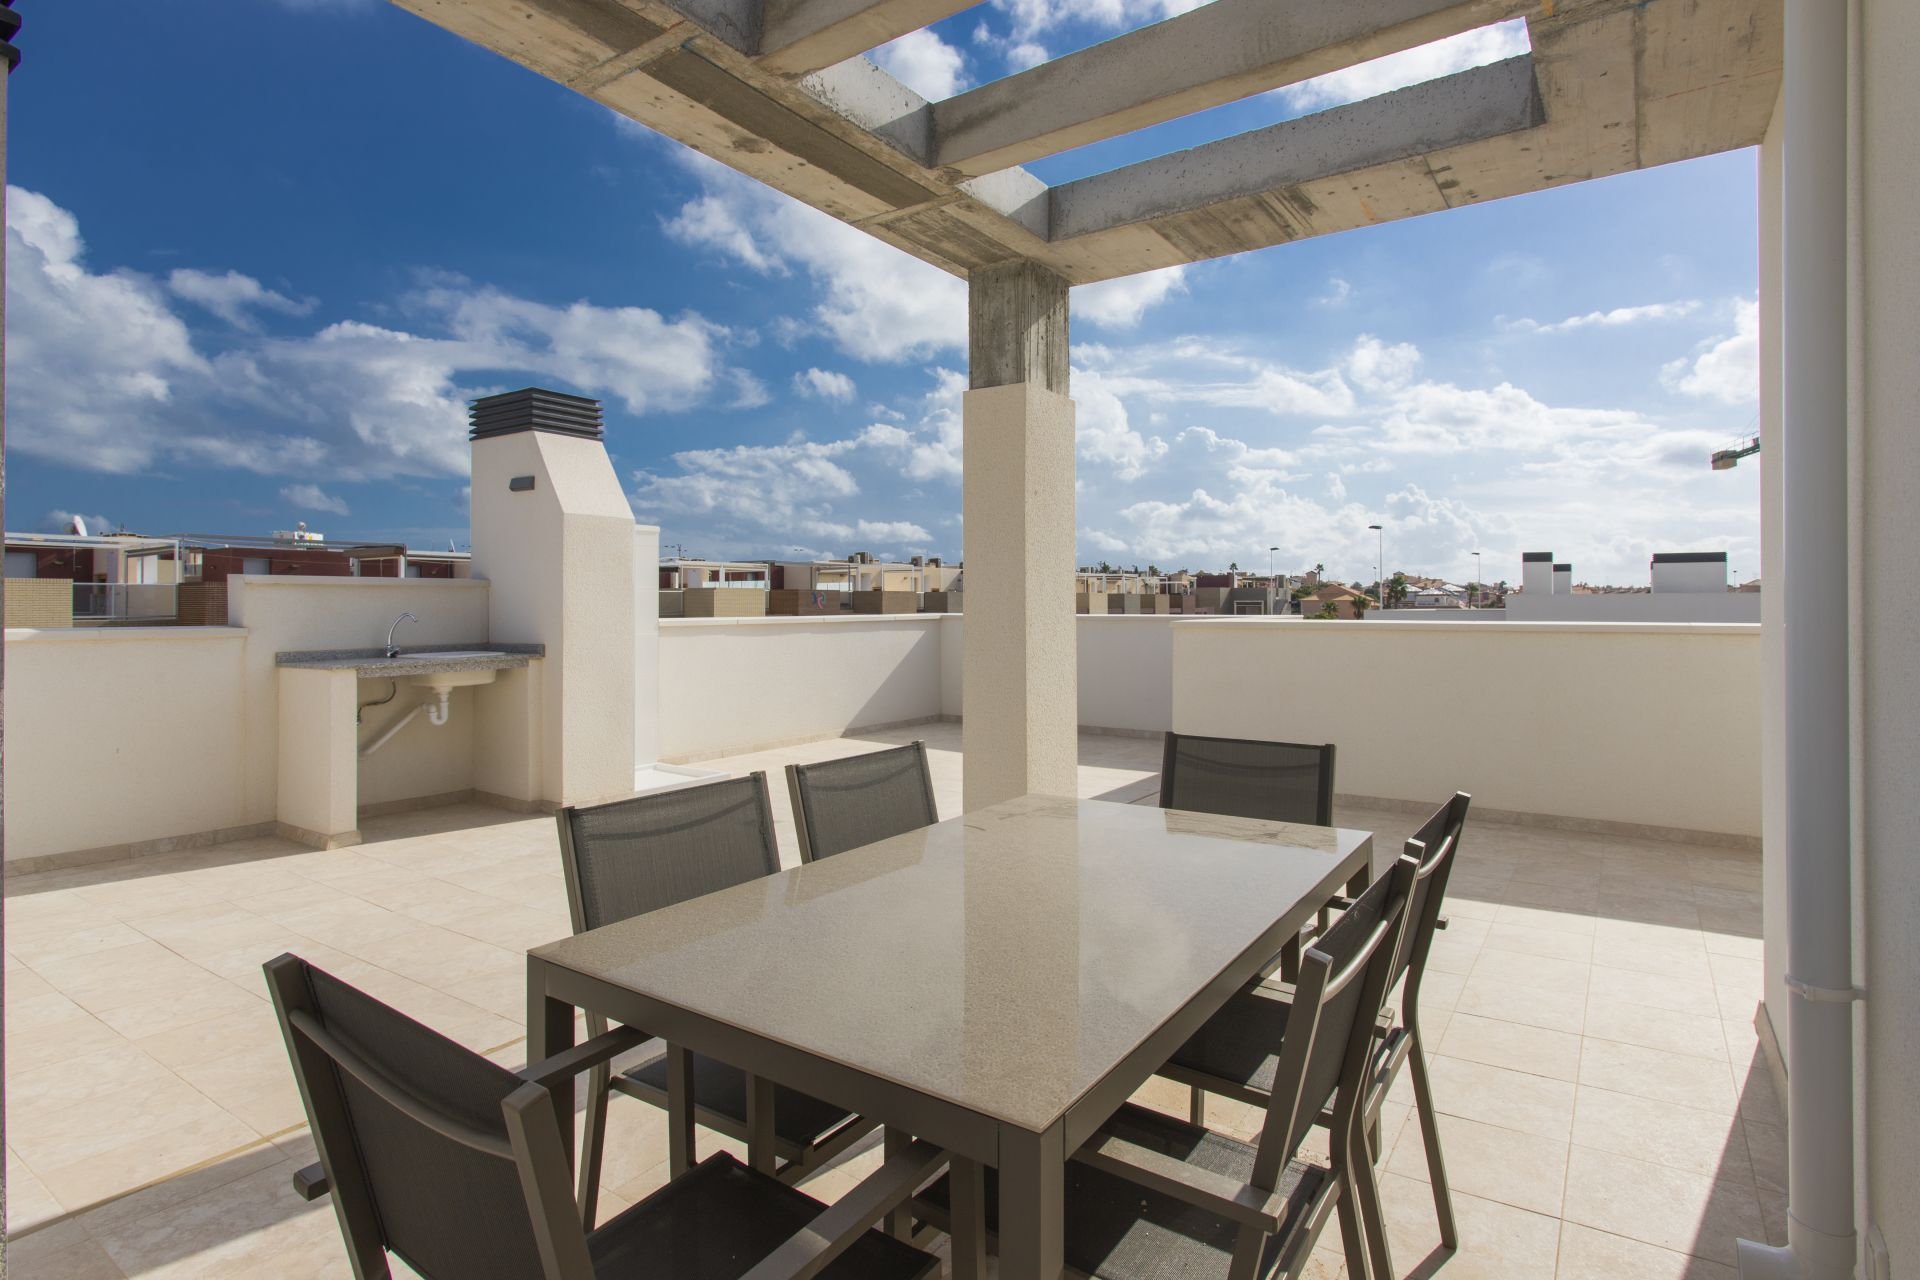 Apartment with 3 bedrooms and 3 bathrooms with garden, Aguas Nuevas. 23